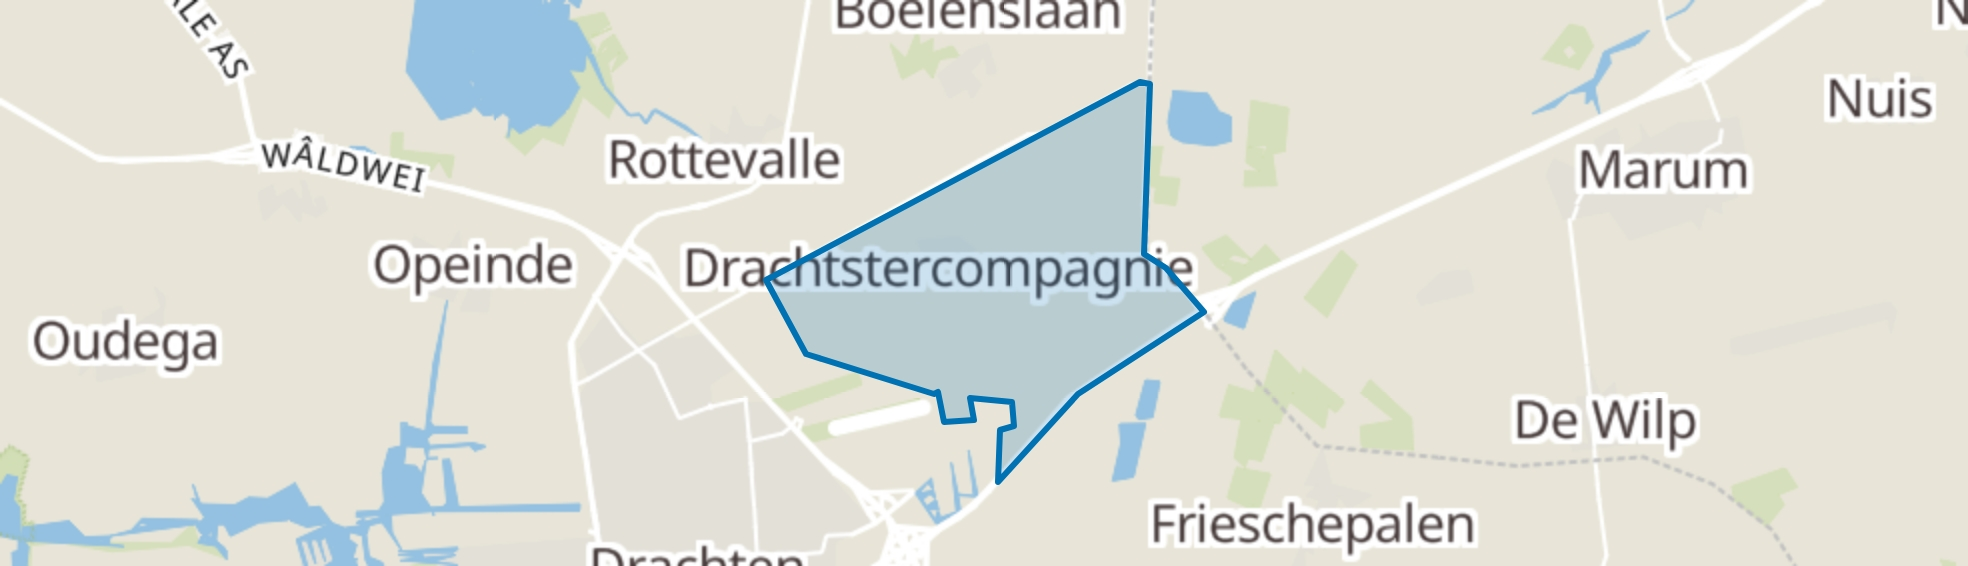 Drachtstercompagnie map